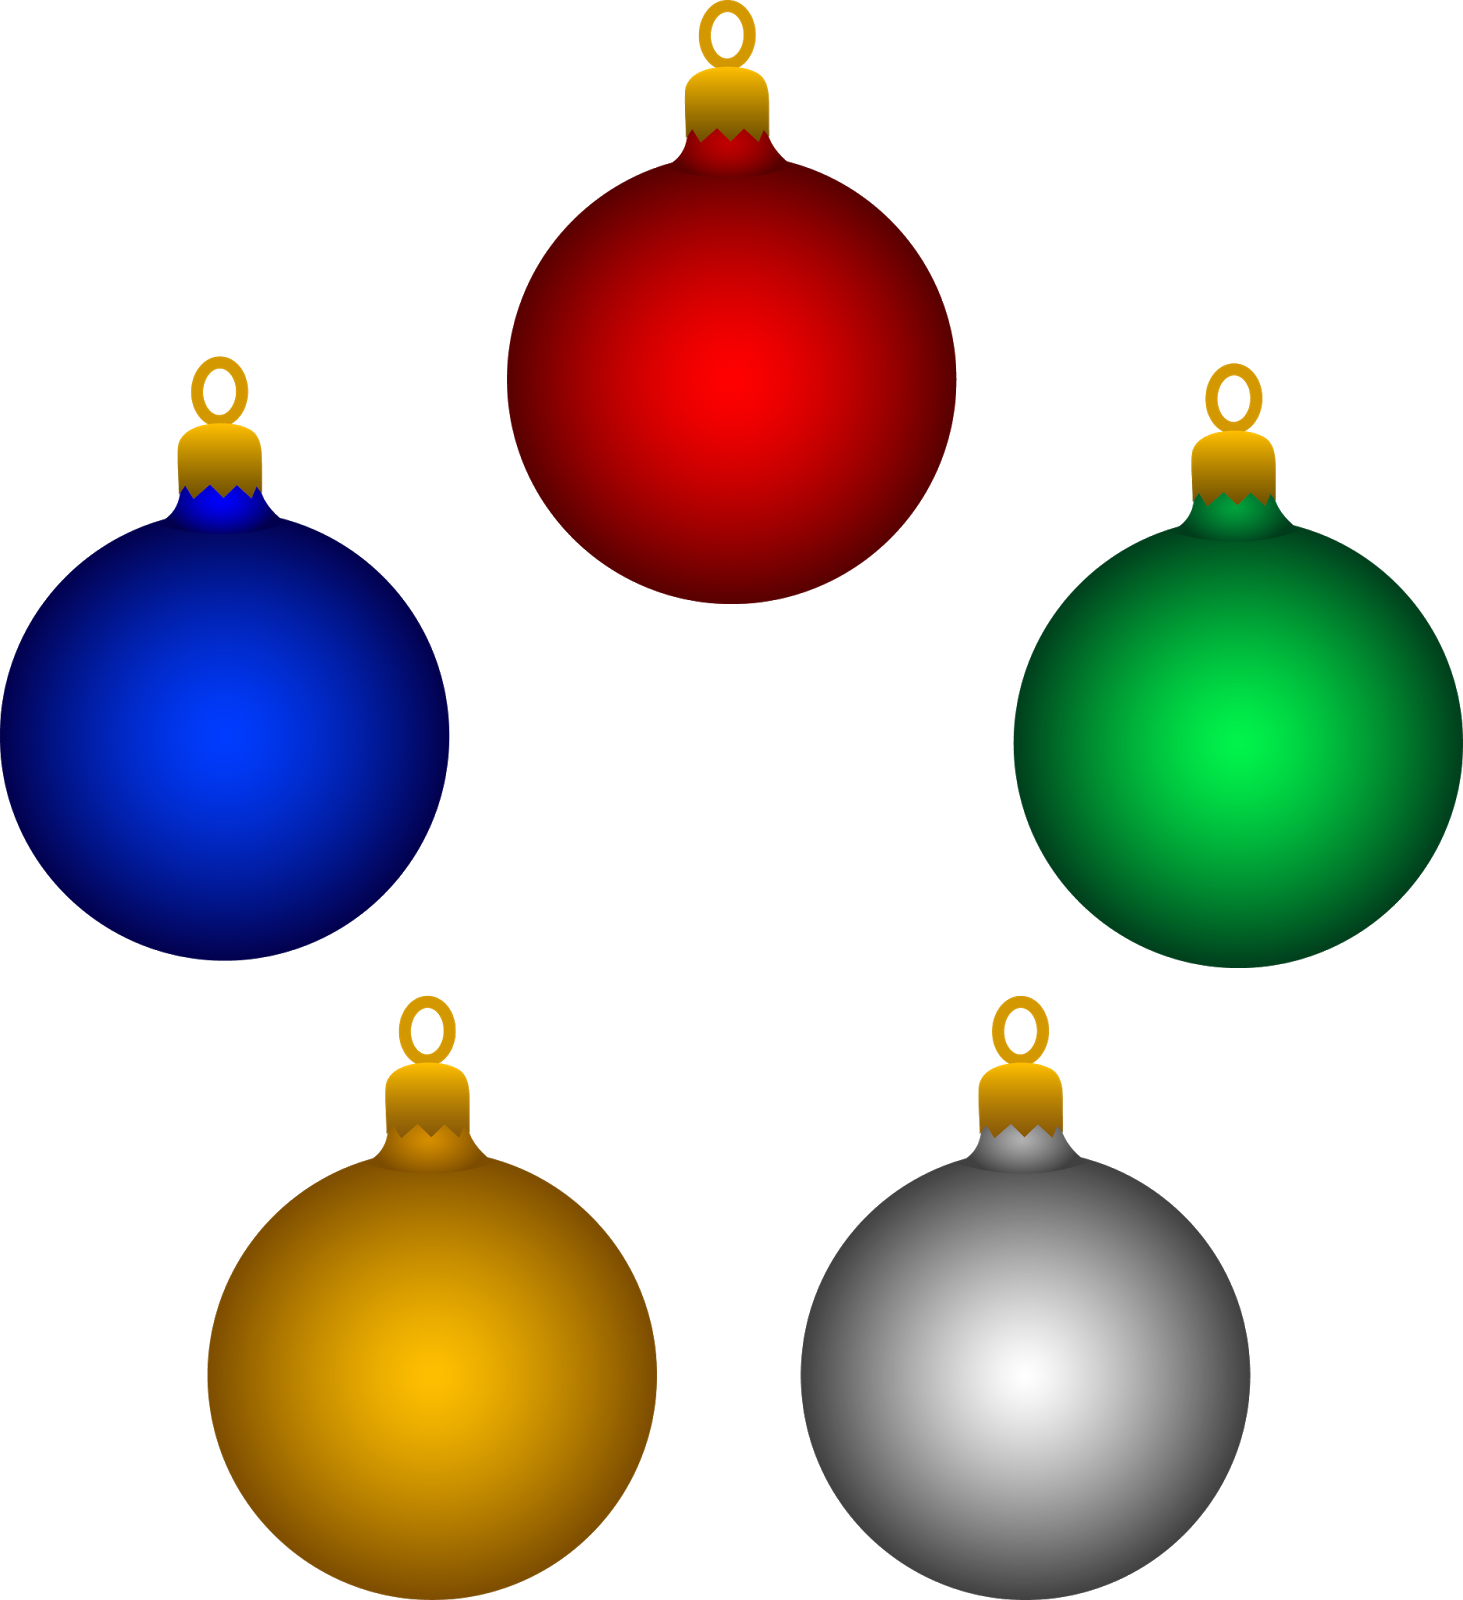 Png christmas tree with ornaments. Lights clipart at getdrawings